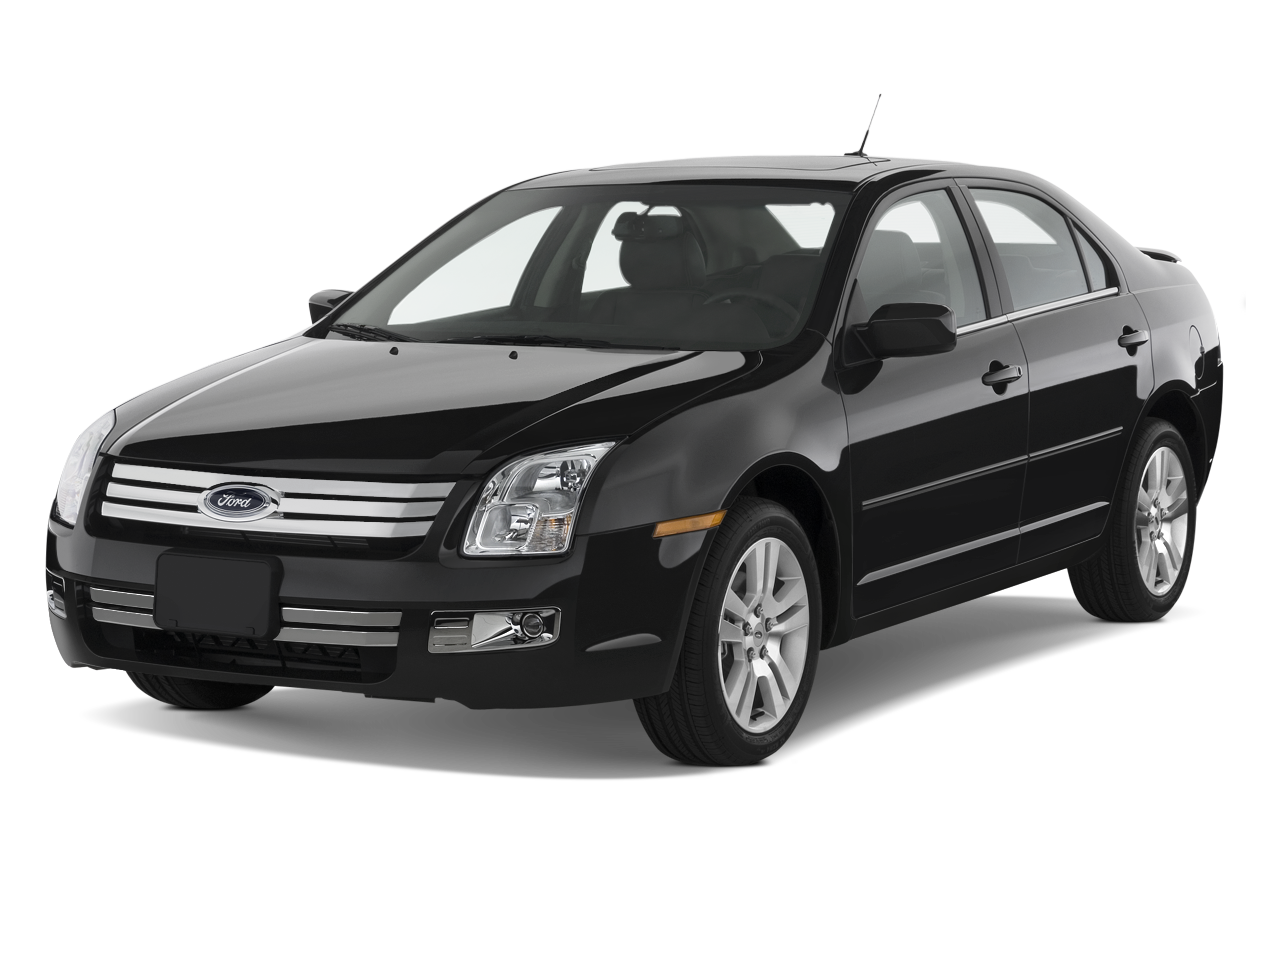 2009 Ford Fusion FWD